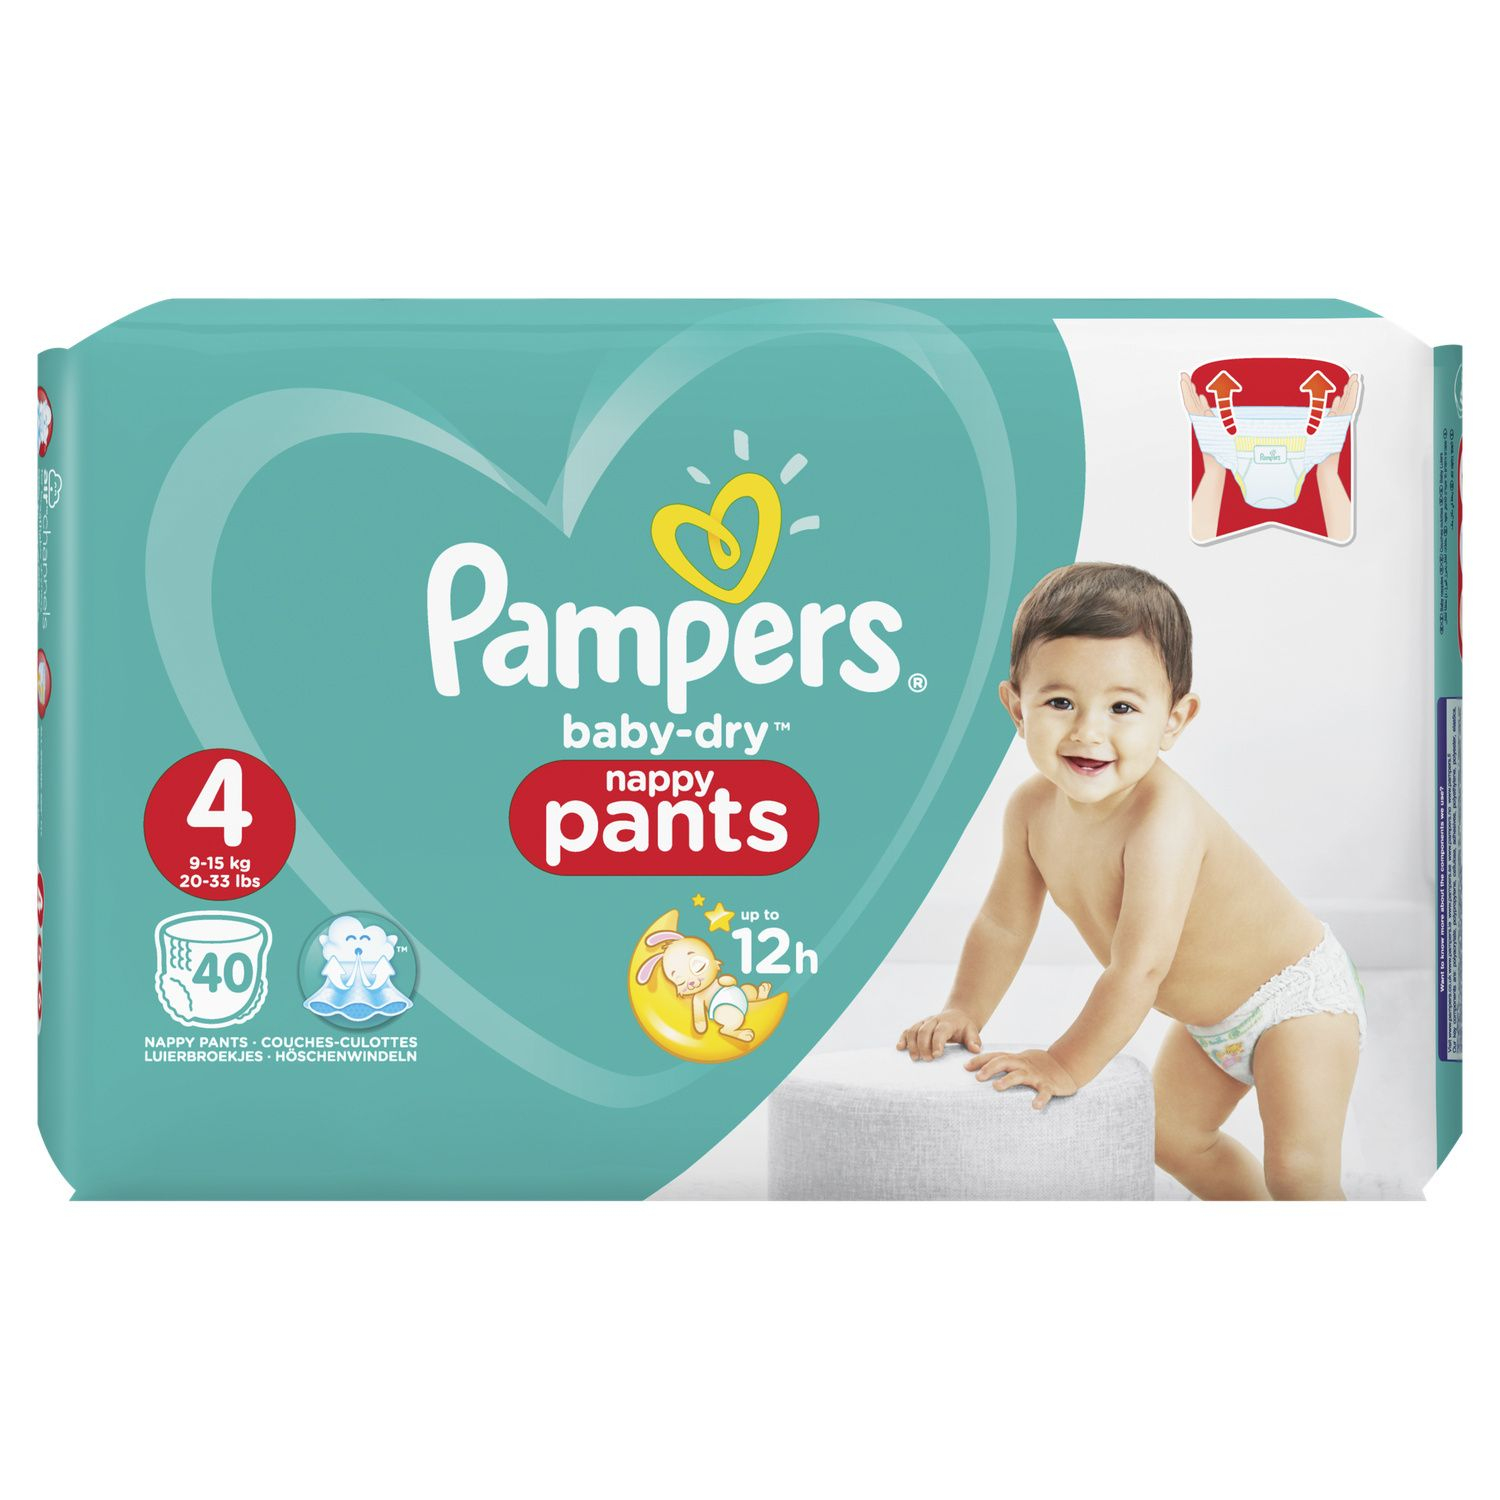 Couches Taille 4 : 8-15 Kg Baby Dry Pants Pampers : Le ... destiné Couche Piscine Carrefour